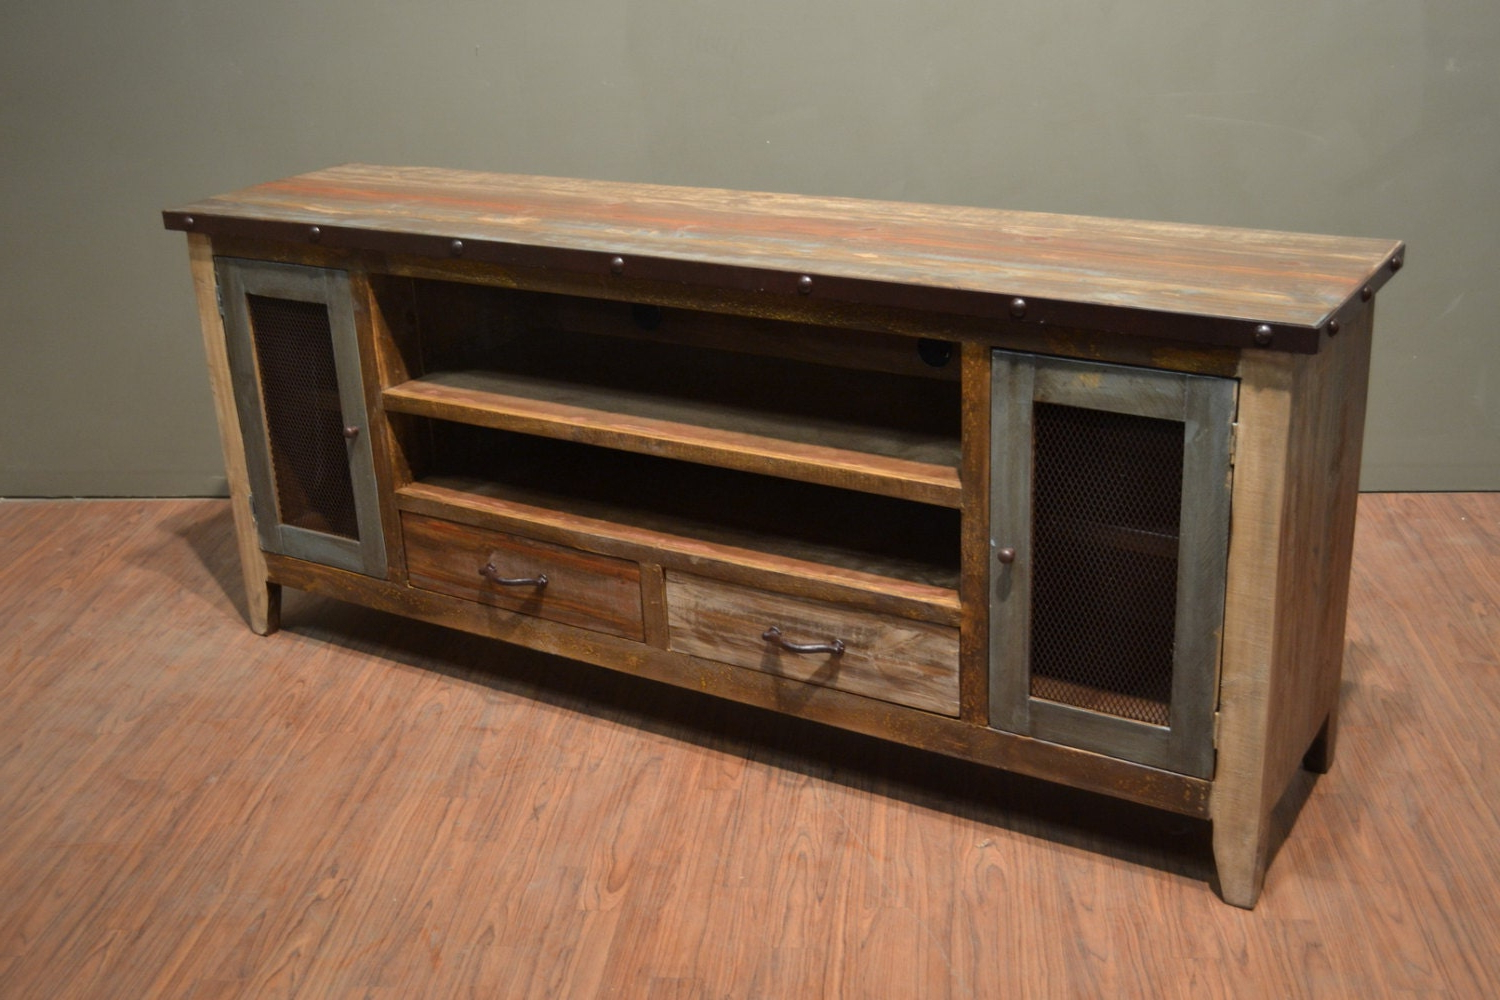 Trendy Rustic Country Tv Stands In Weathered Pine Finish For Industrial Rustic Reclaimed Wood 76 Inch Tv Stand Media (View 2 of 10)